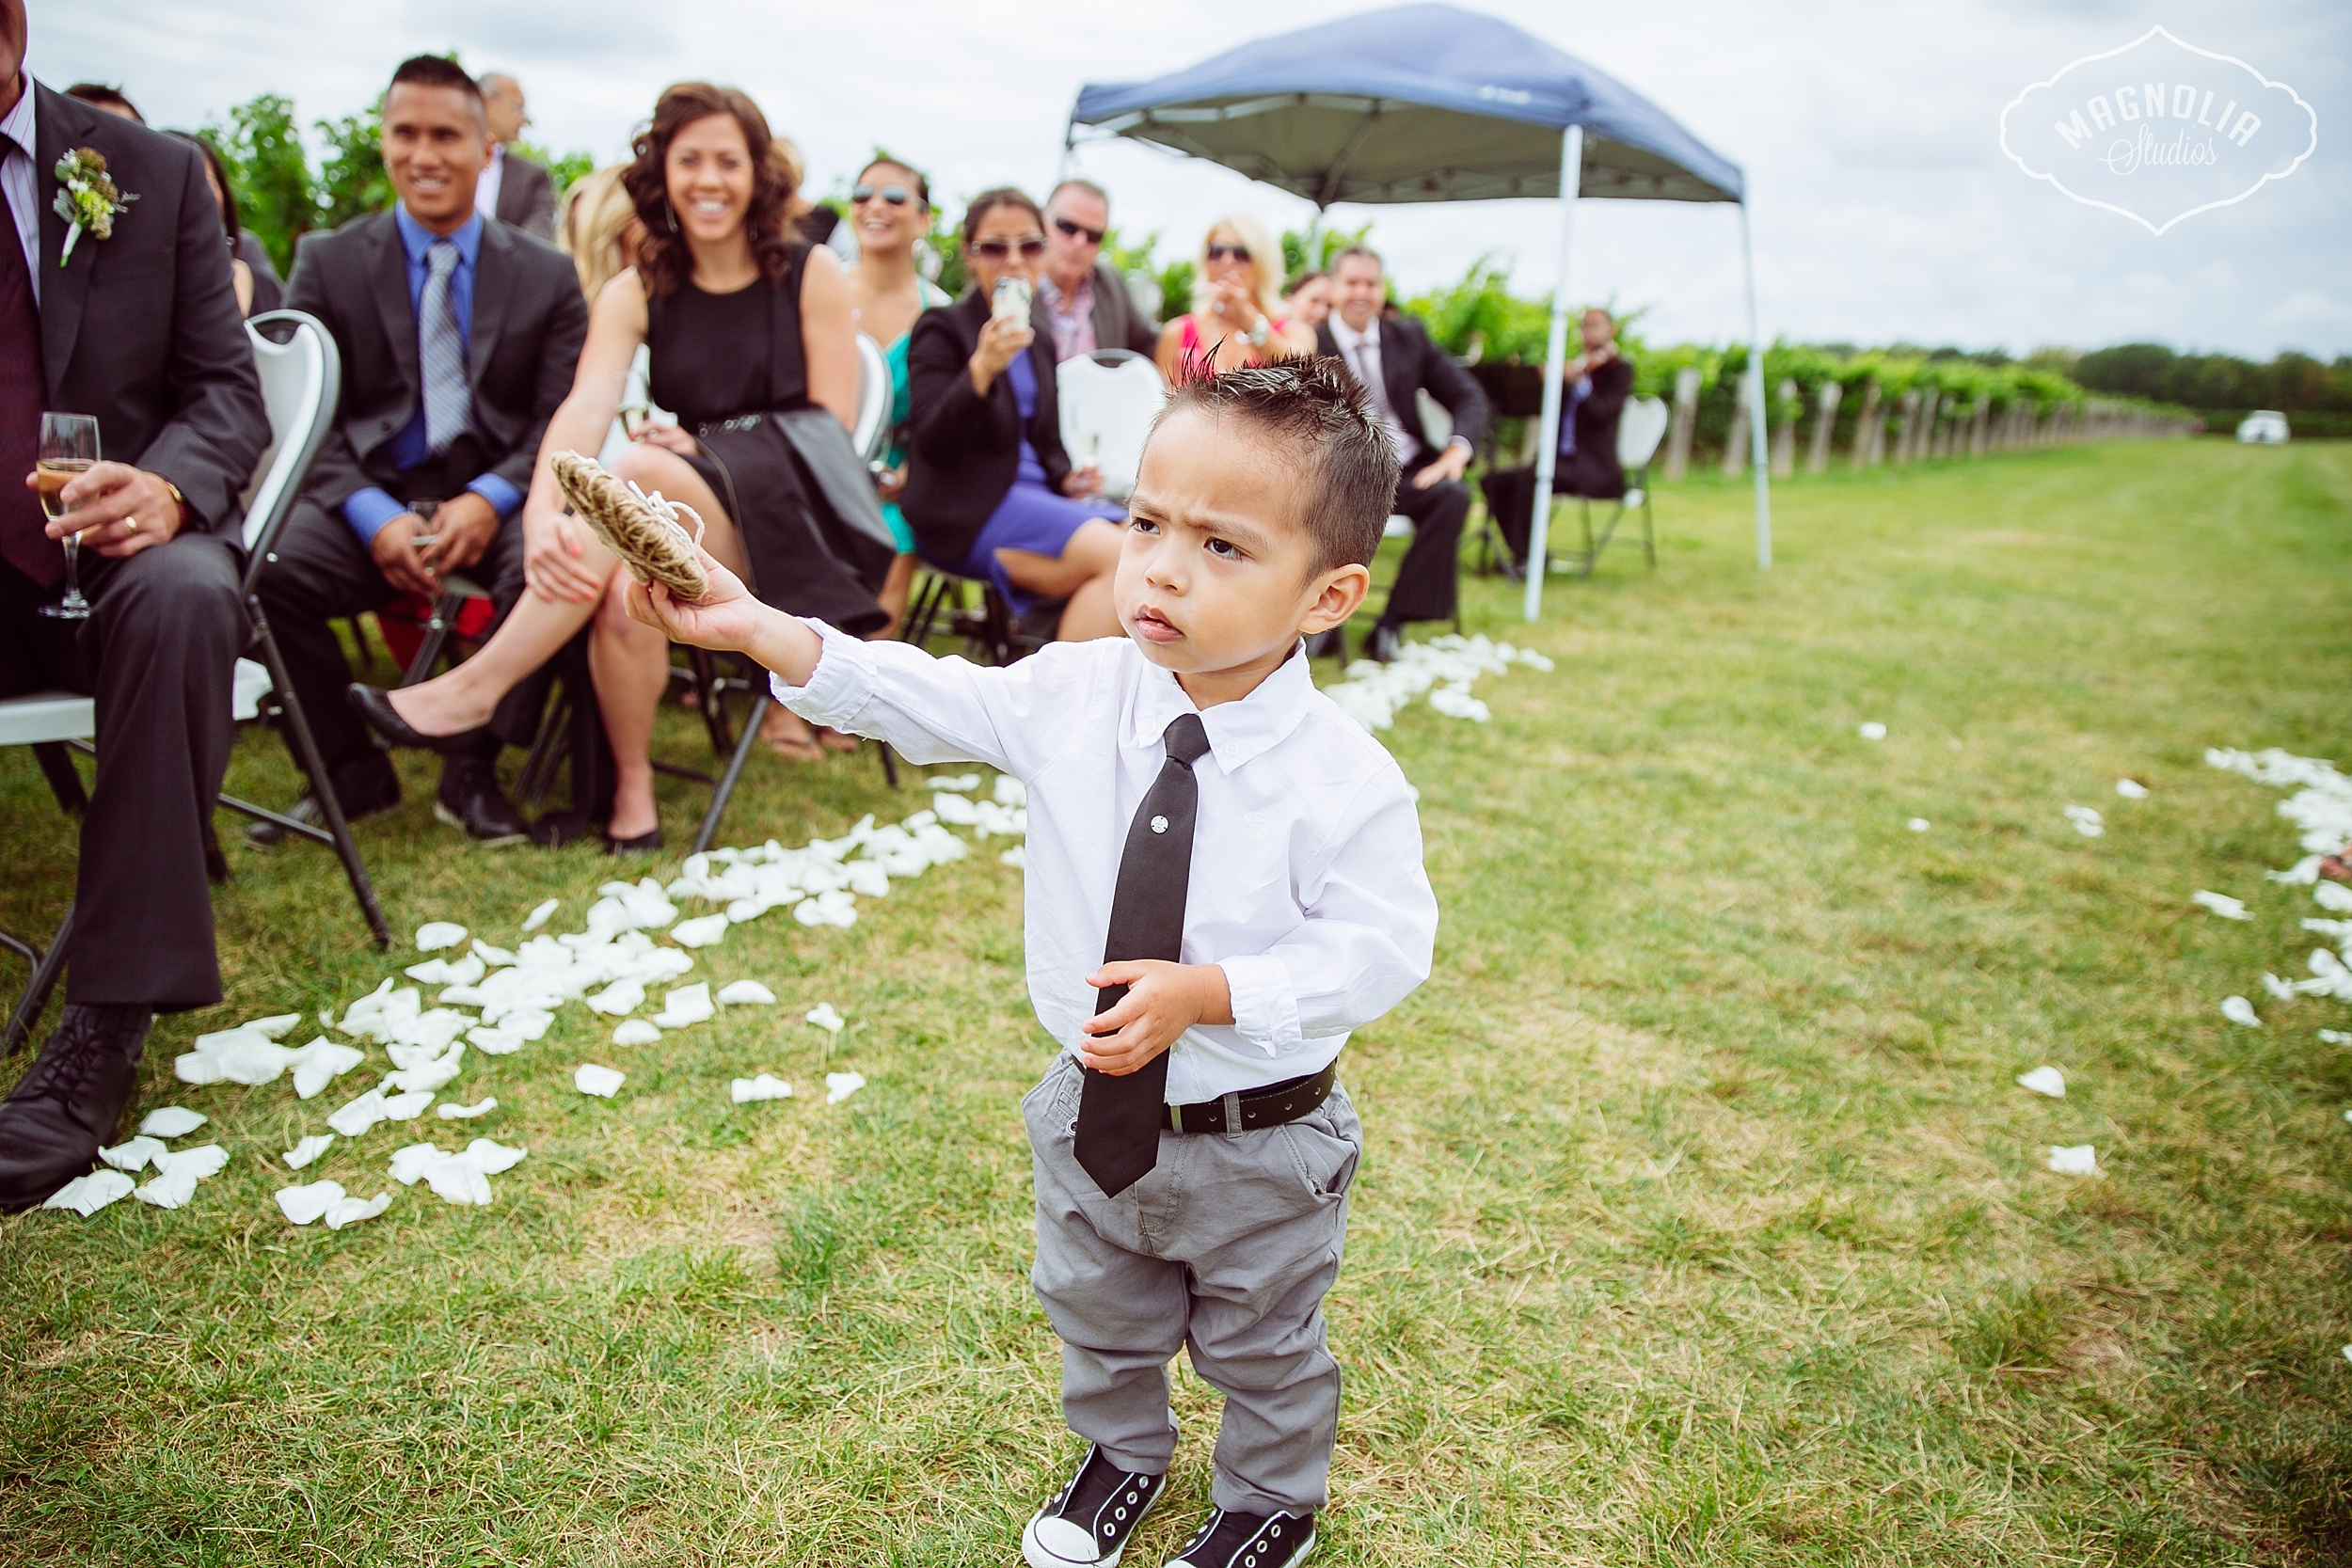 Cavesprings_Winery_Wedding_NOTL-0027